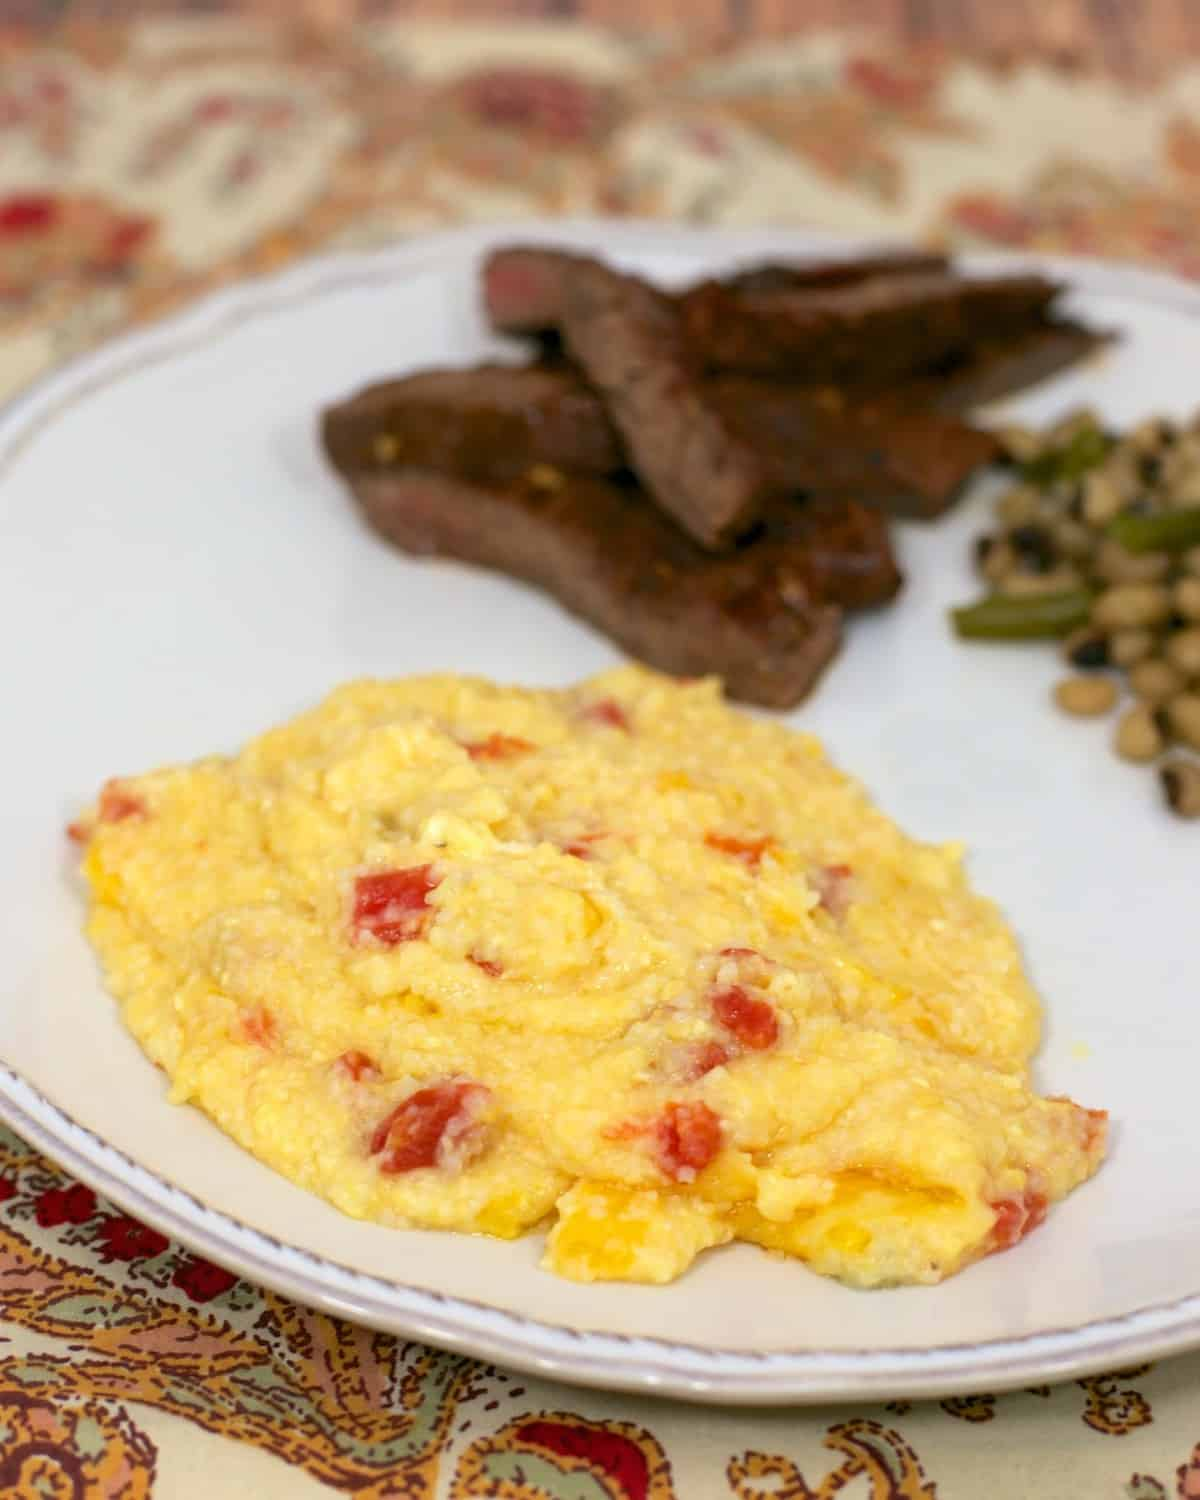 Baked Rotel Cheese Grits - quick side dish recipe - grits, cheese, butter, eggs and rotel - these grits are to-die-for! If you've never tried grits, this is the recipe to make you fall in love with them!